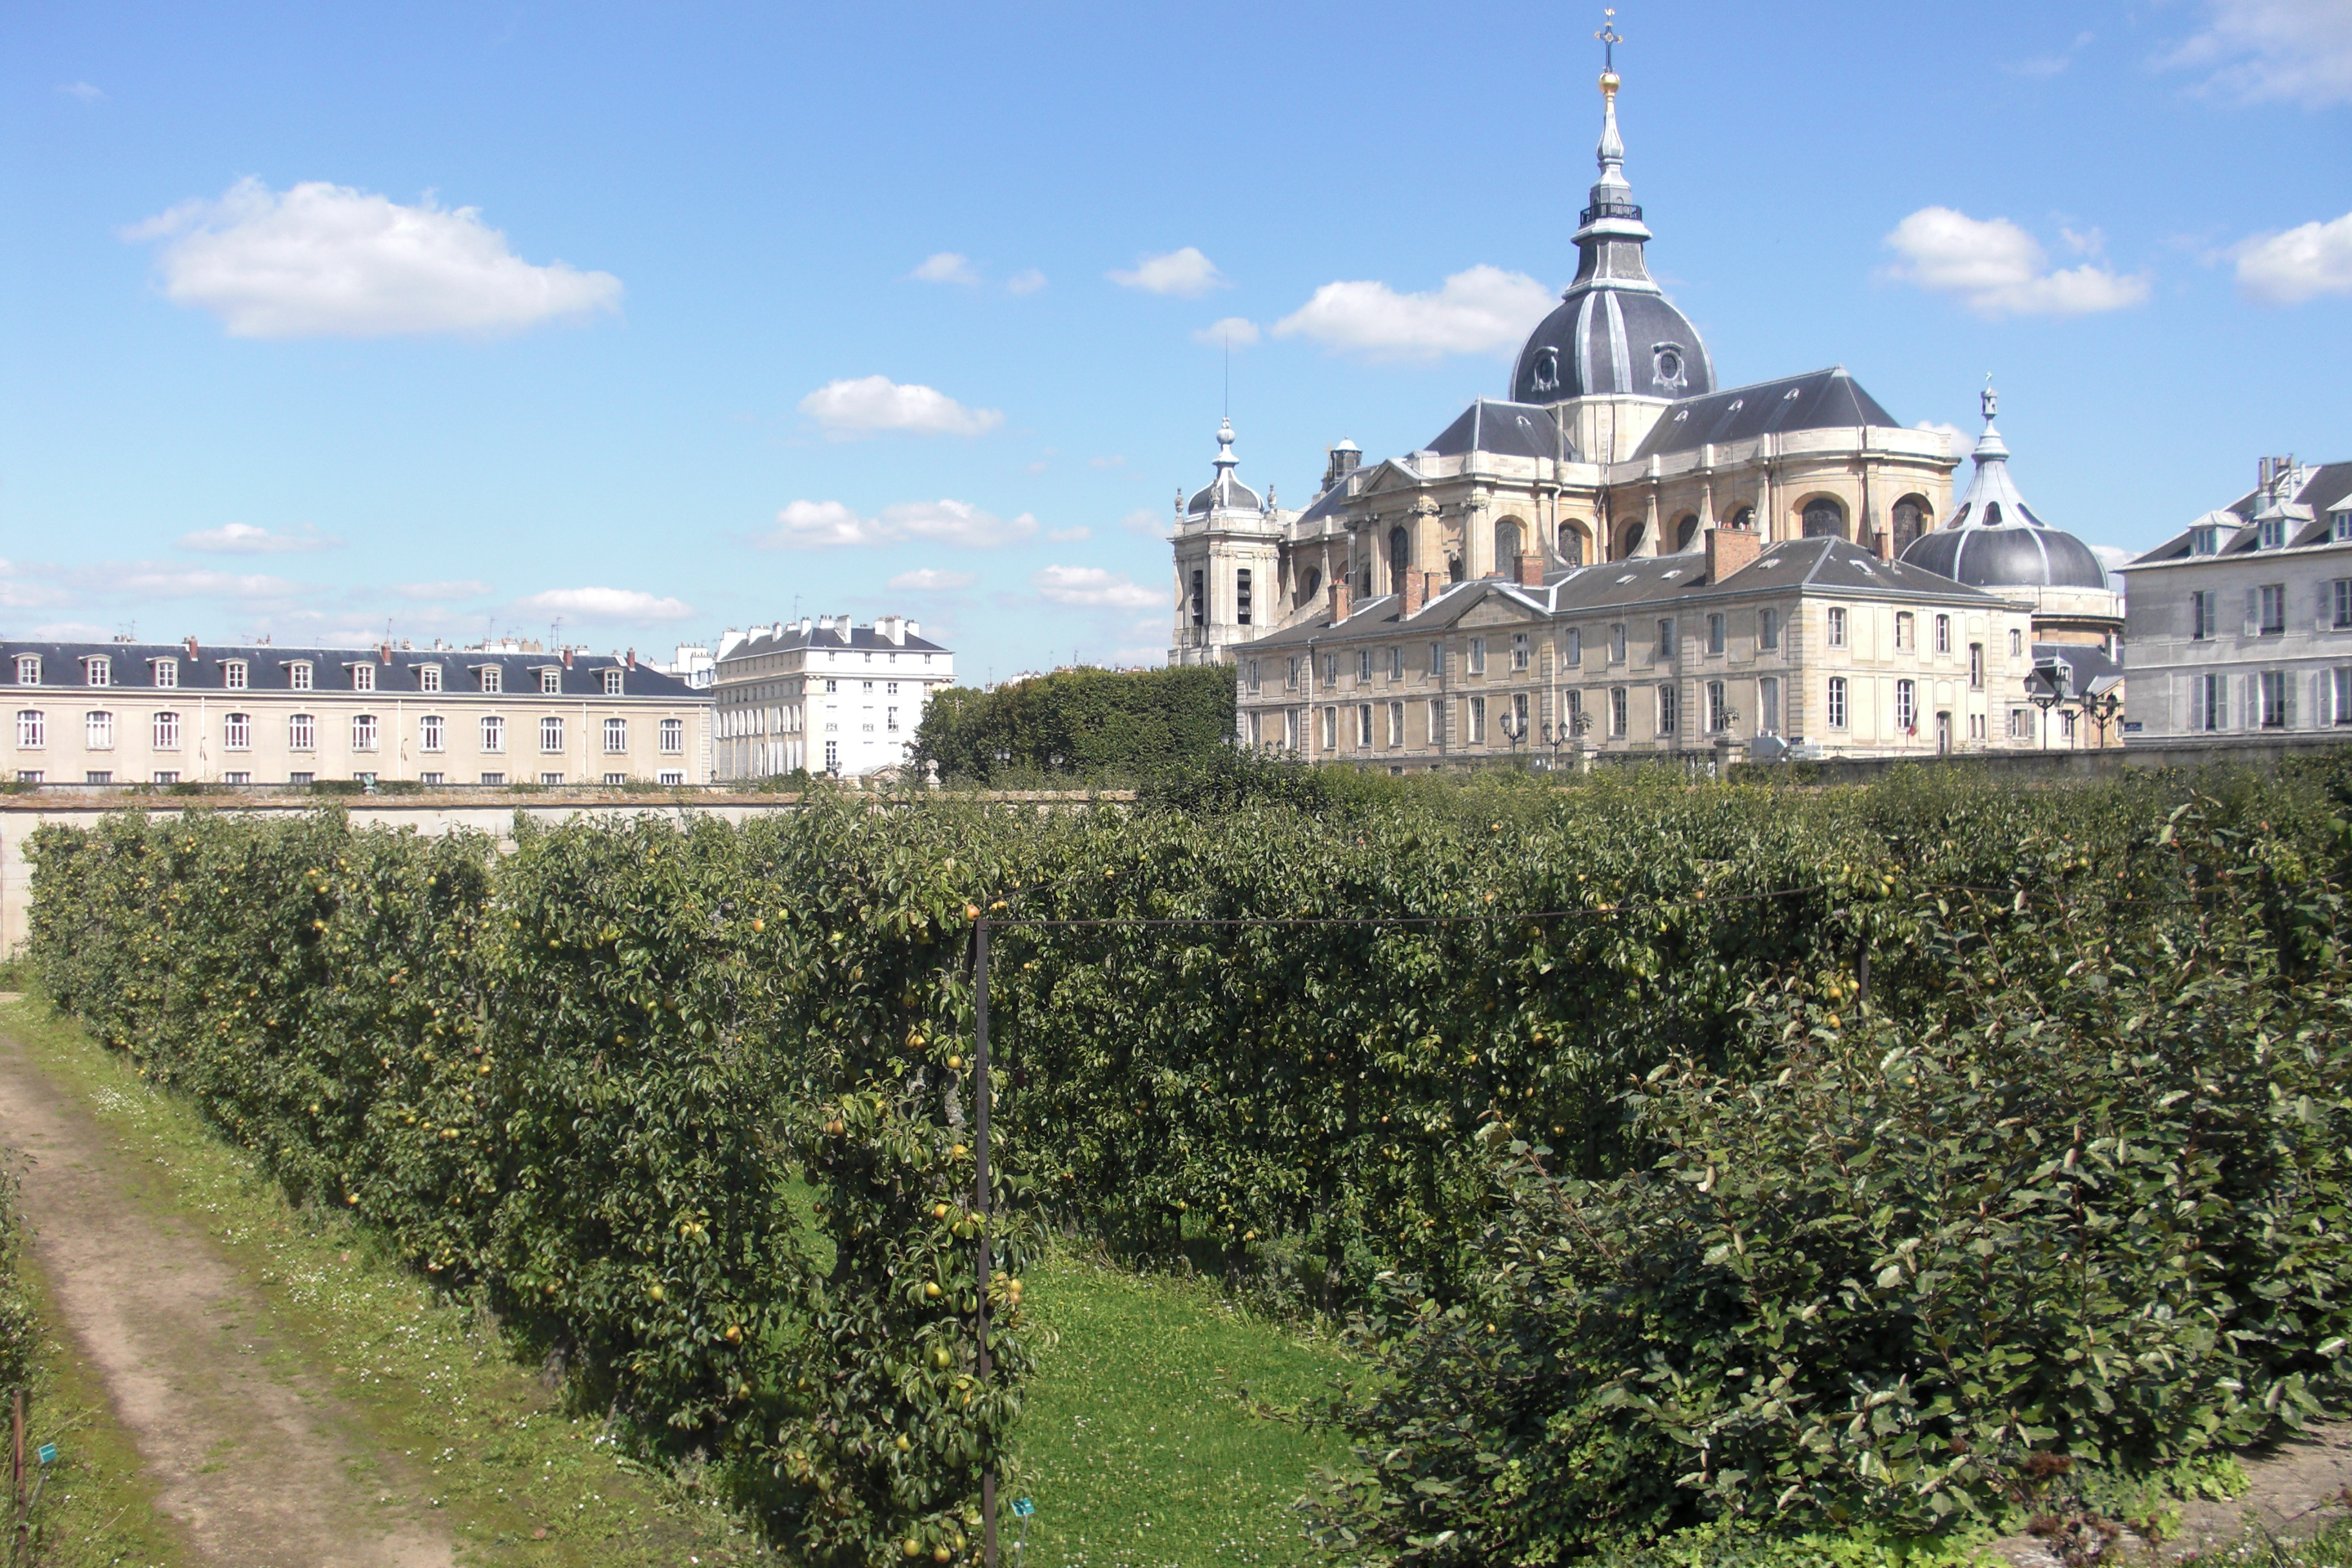 Today The Garden Is Almost Exactly As It Was When Louis XIV Walked Through  It And The Only Few Changes Have Been Made On The Order Of His Successors.